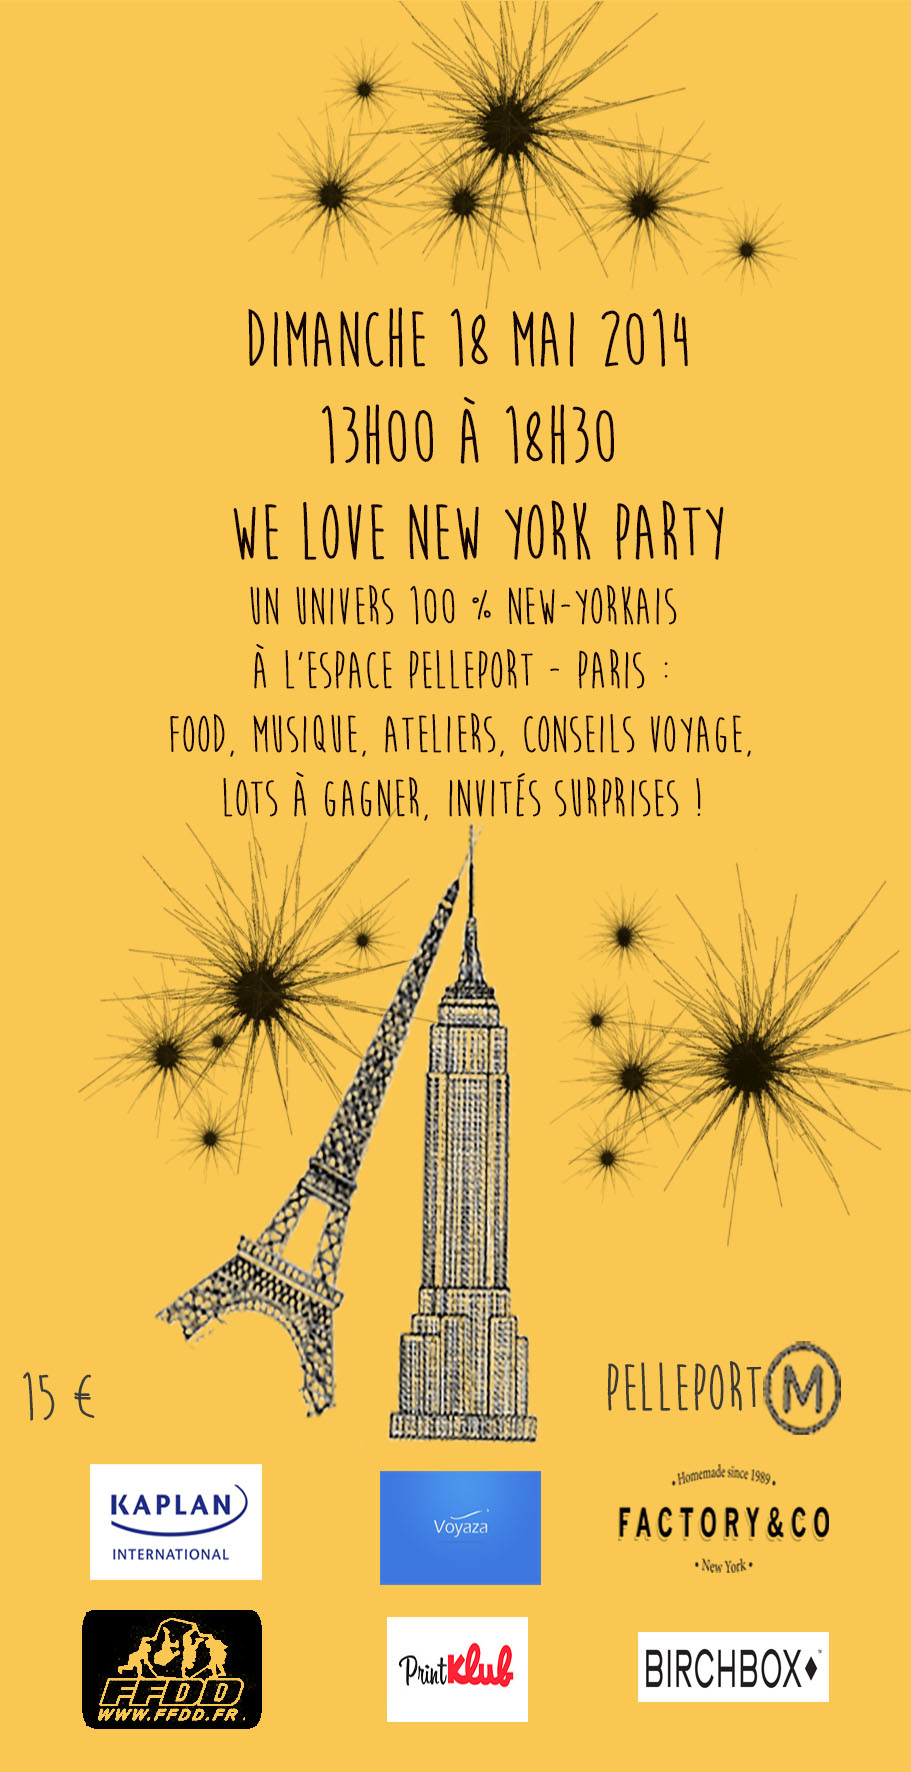 we love new york party